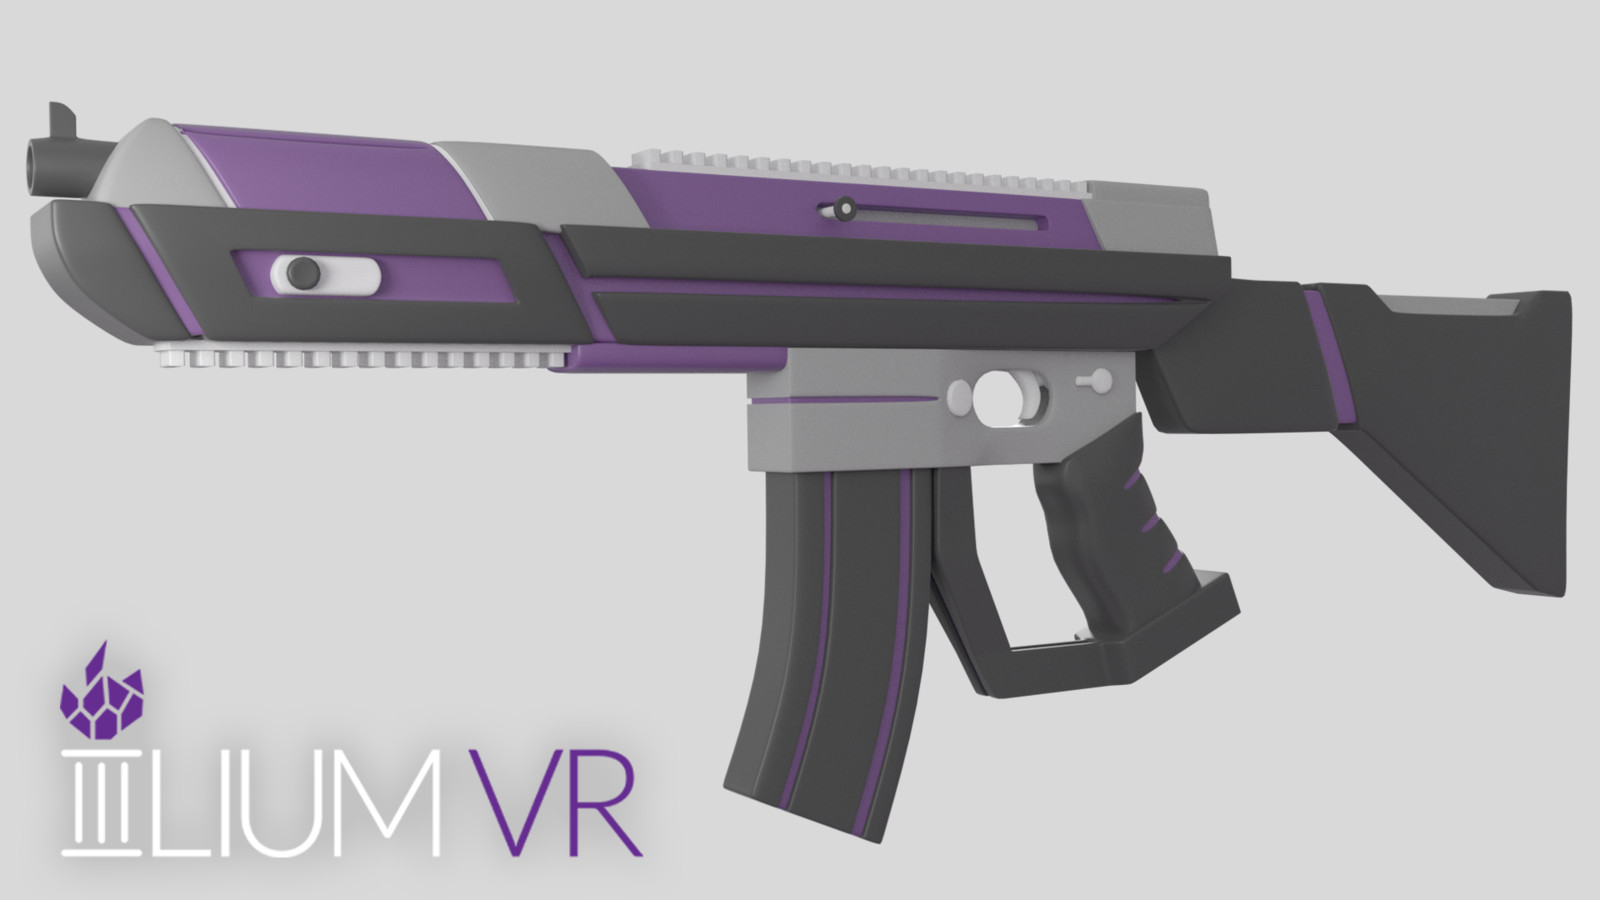 Final perspective render of completed rifle model